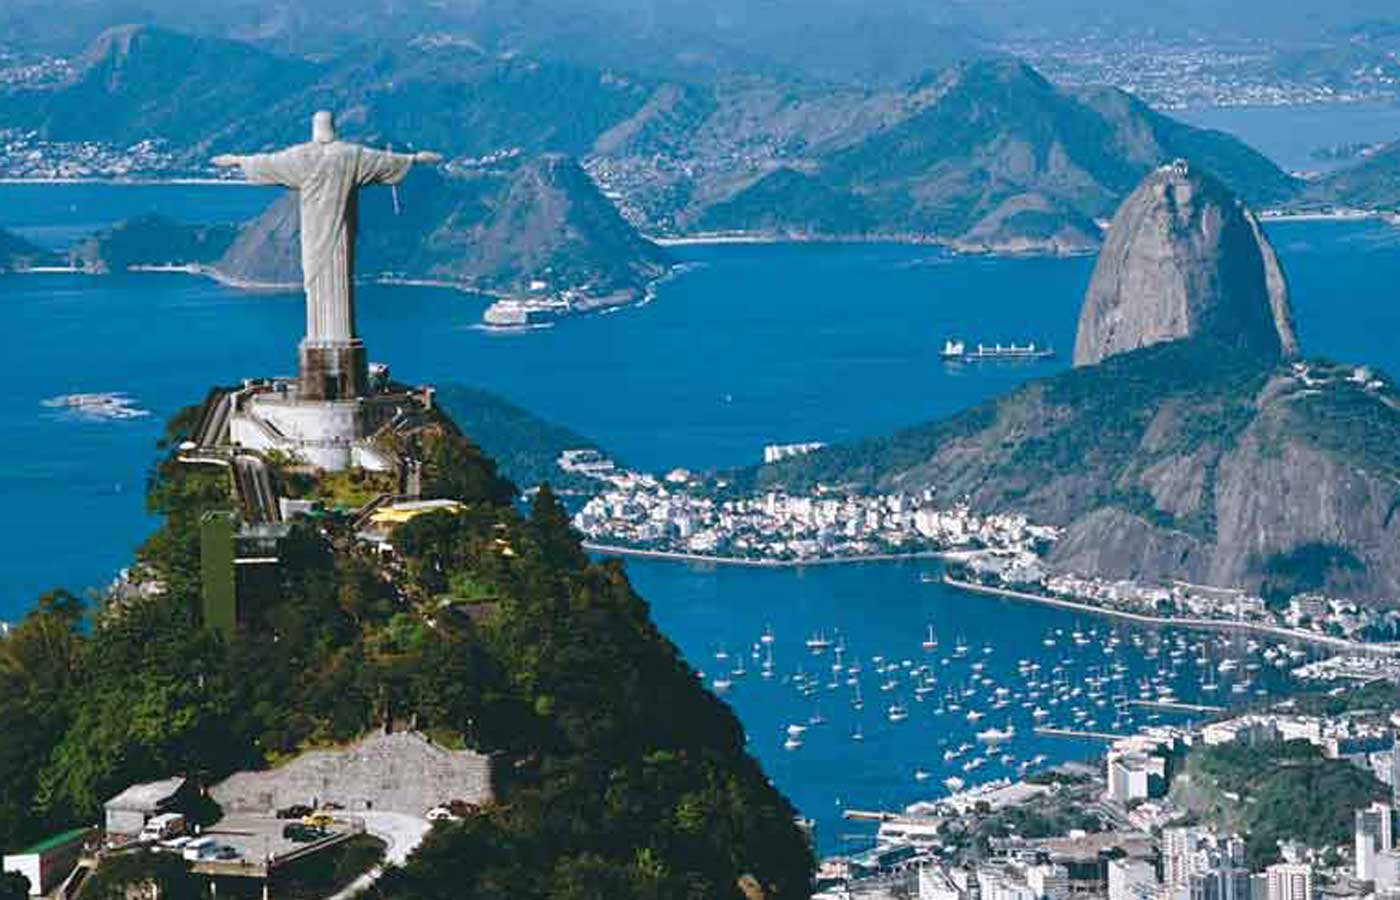 Glorious views of the famous Corcovado and Guanabara Bay in Rio de Janeiro , Brazil